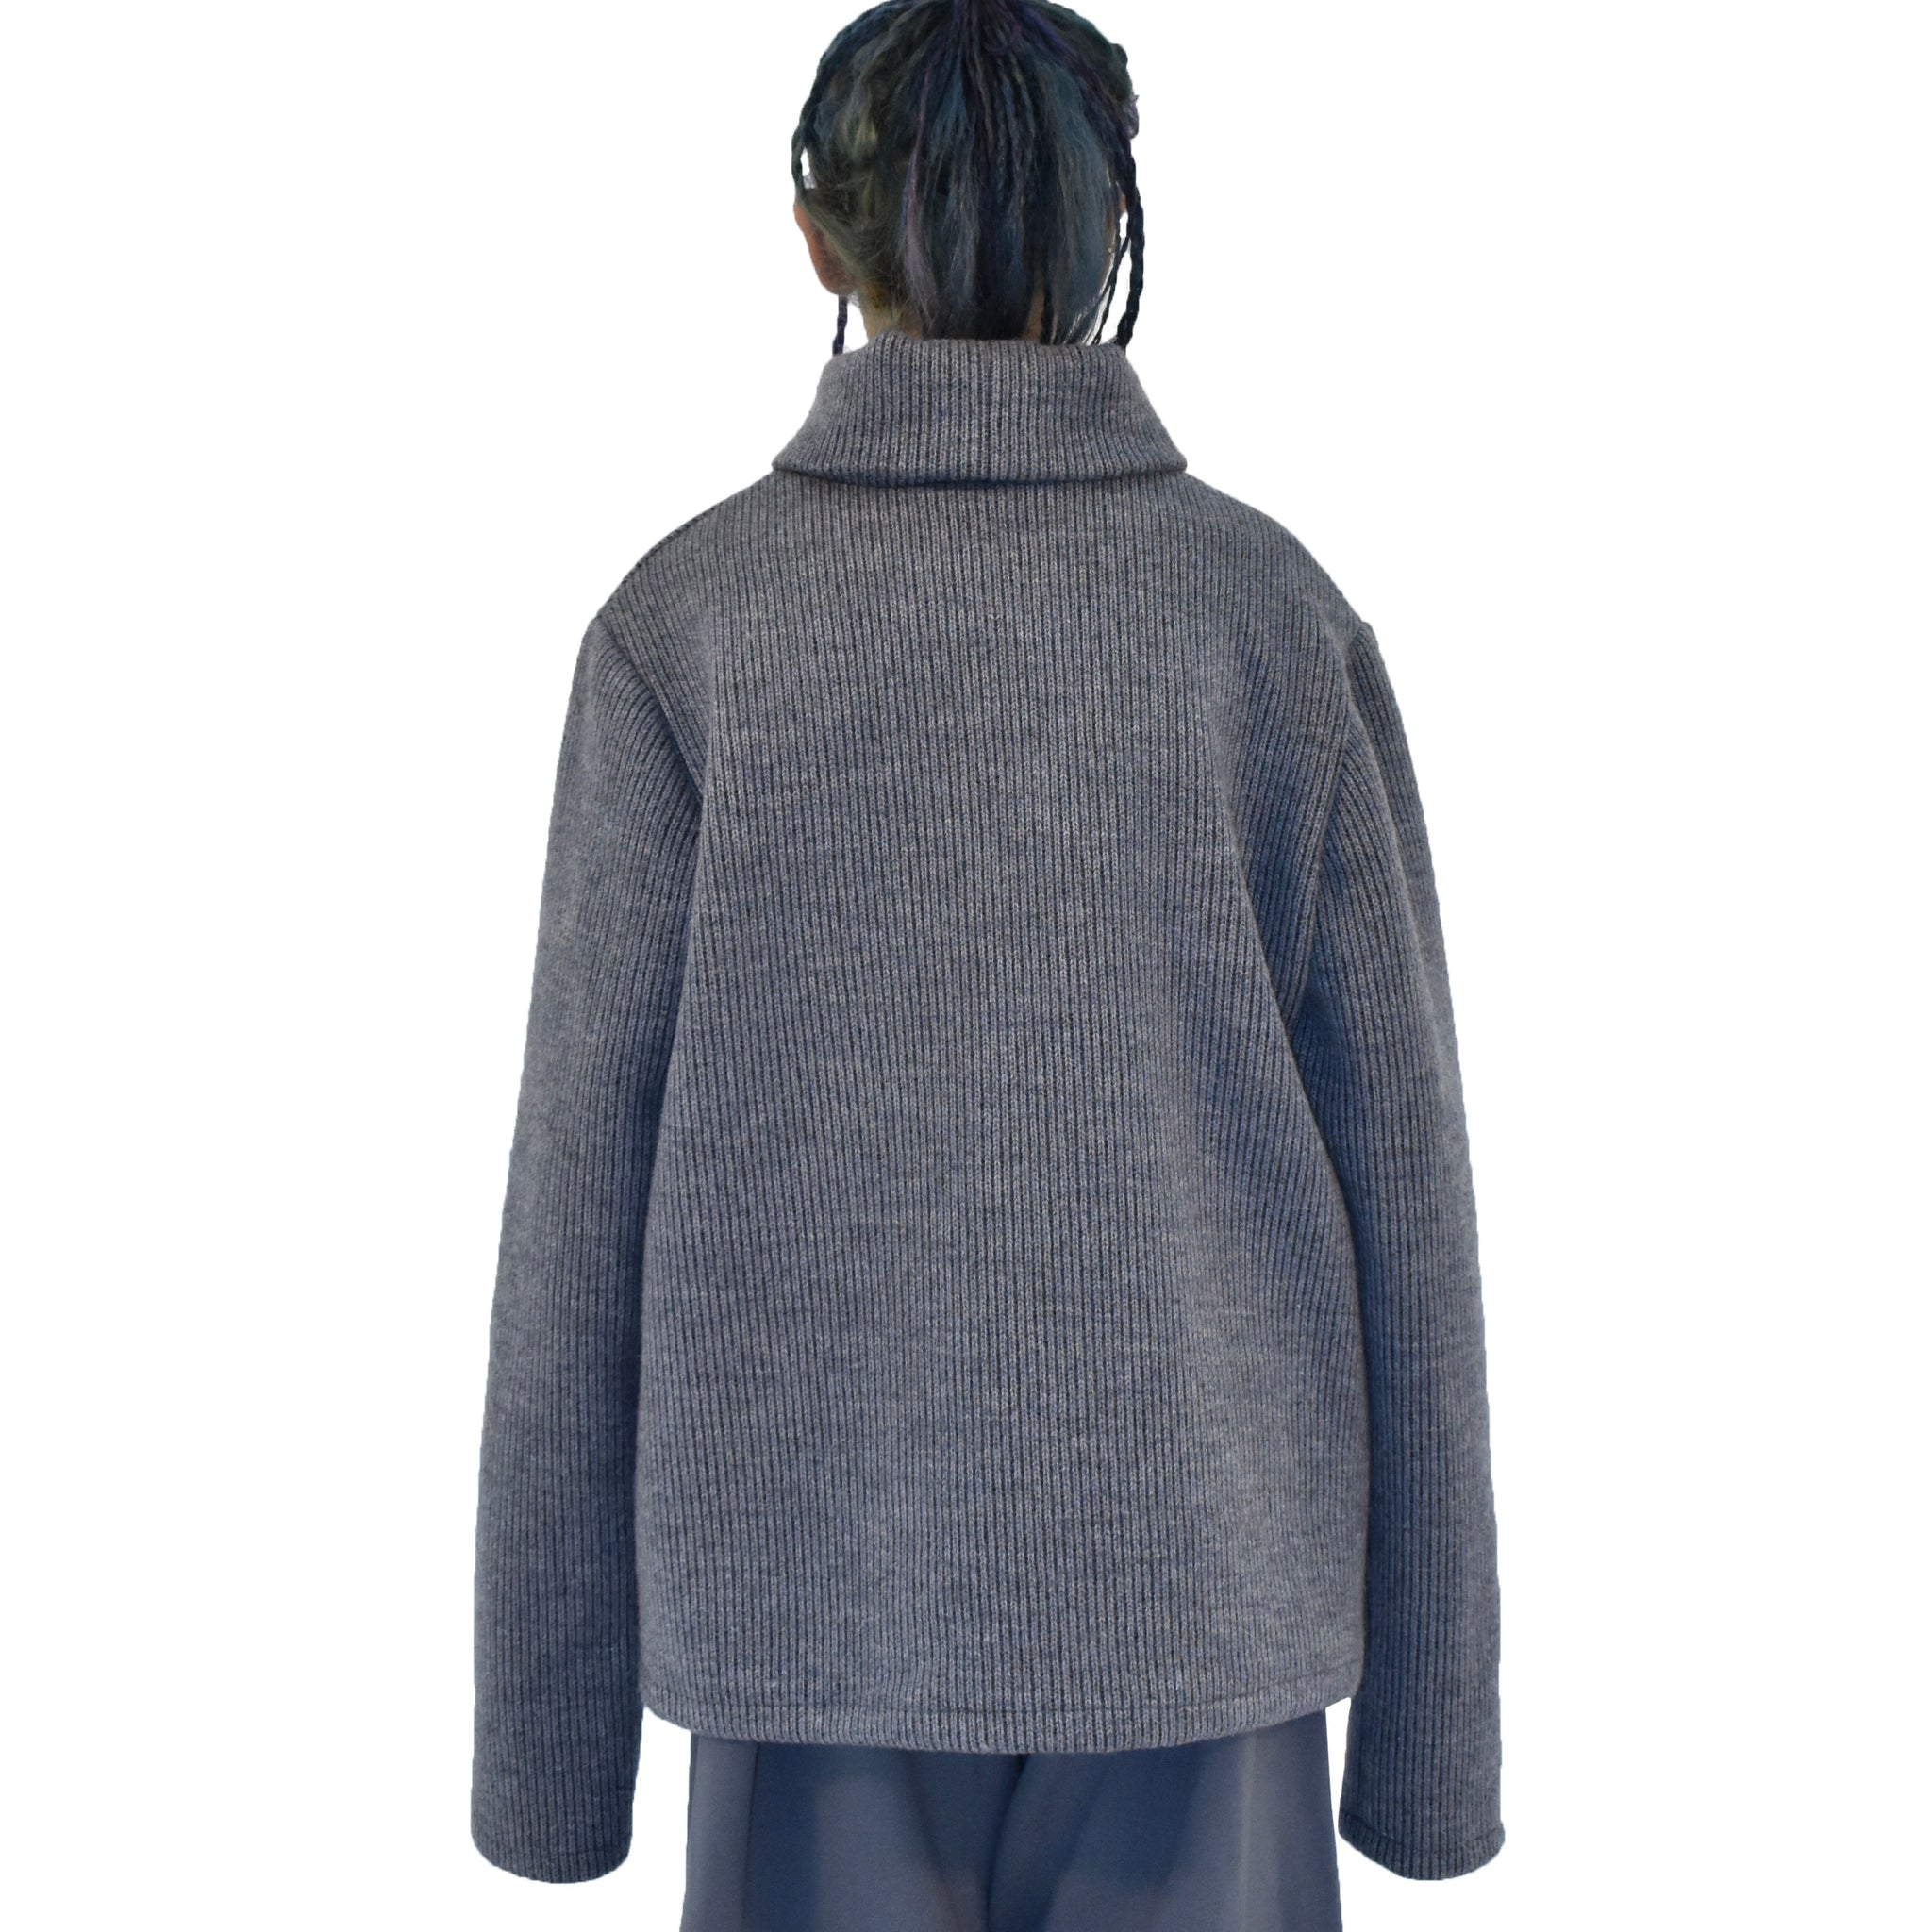 Boxy Turtleneck Sweatshirt